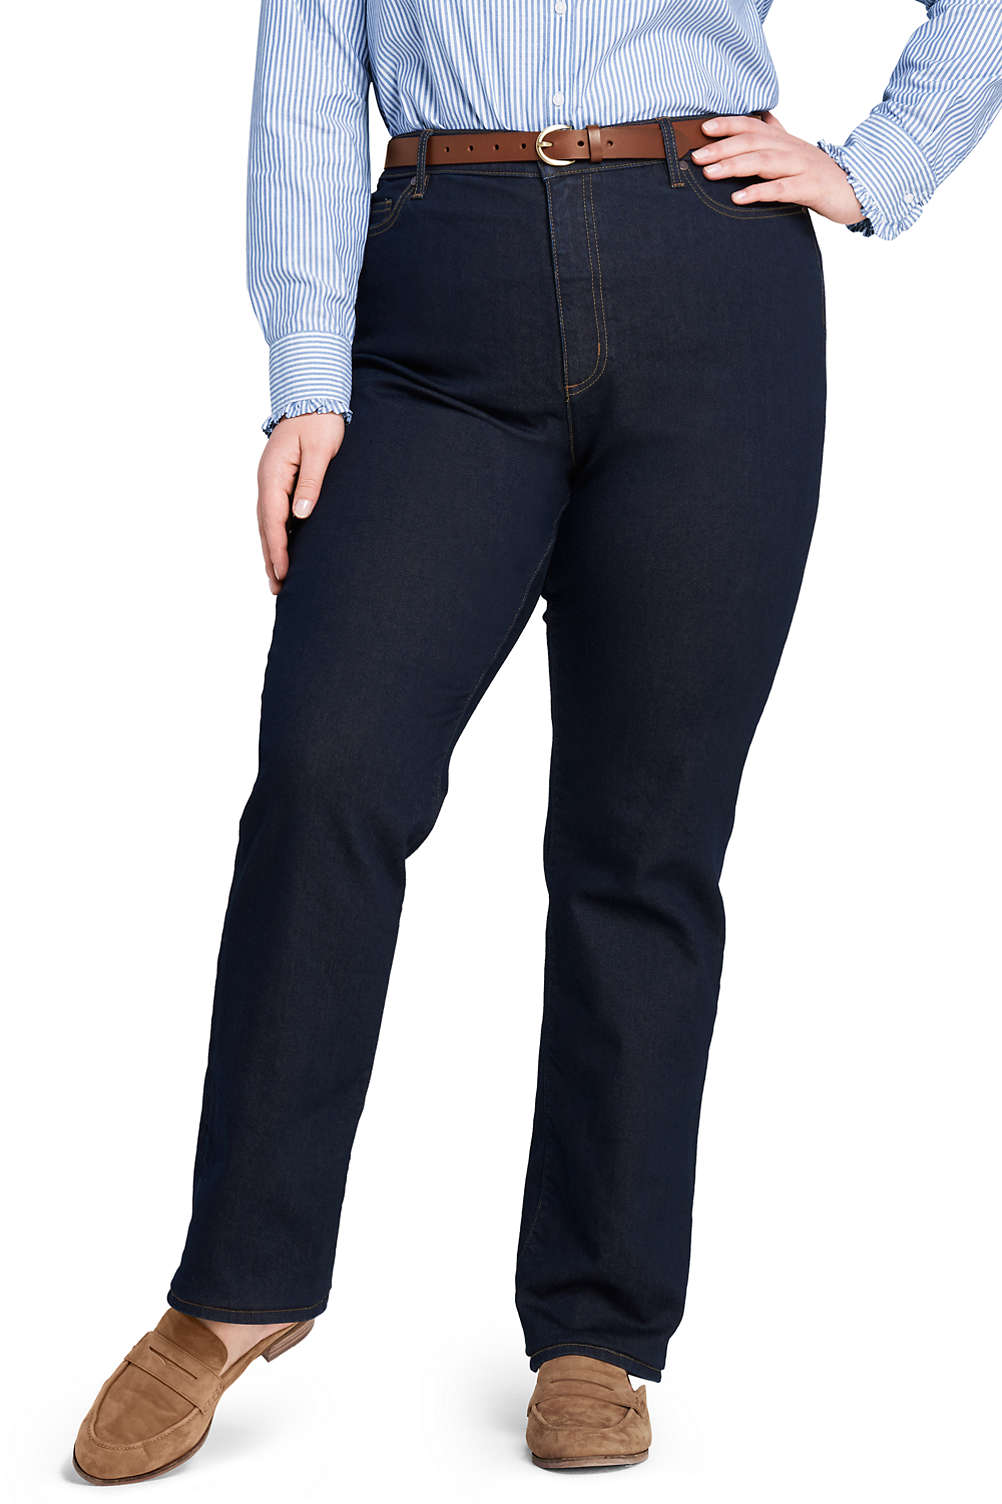 6ea6a11df2cd1 Women s High Rise Straight Leg Jeans from Lands  End